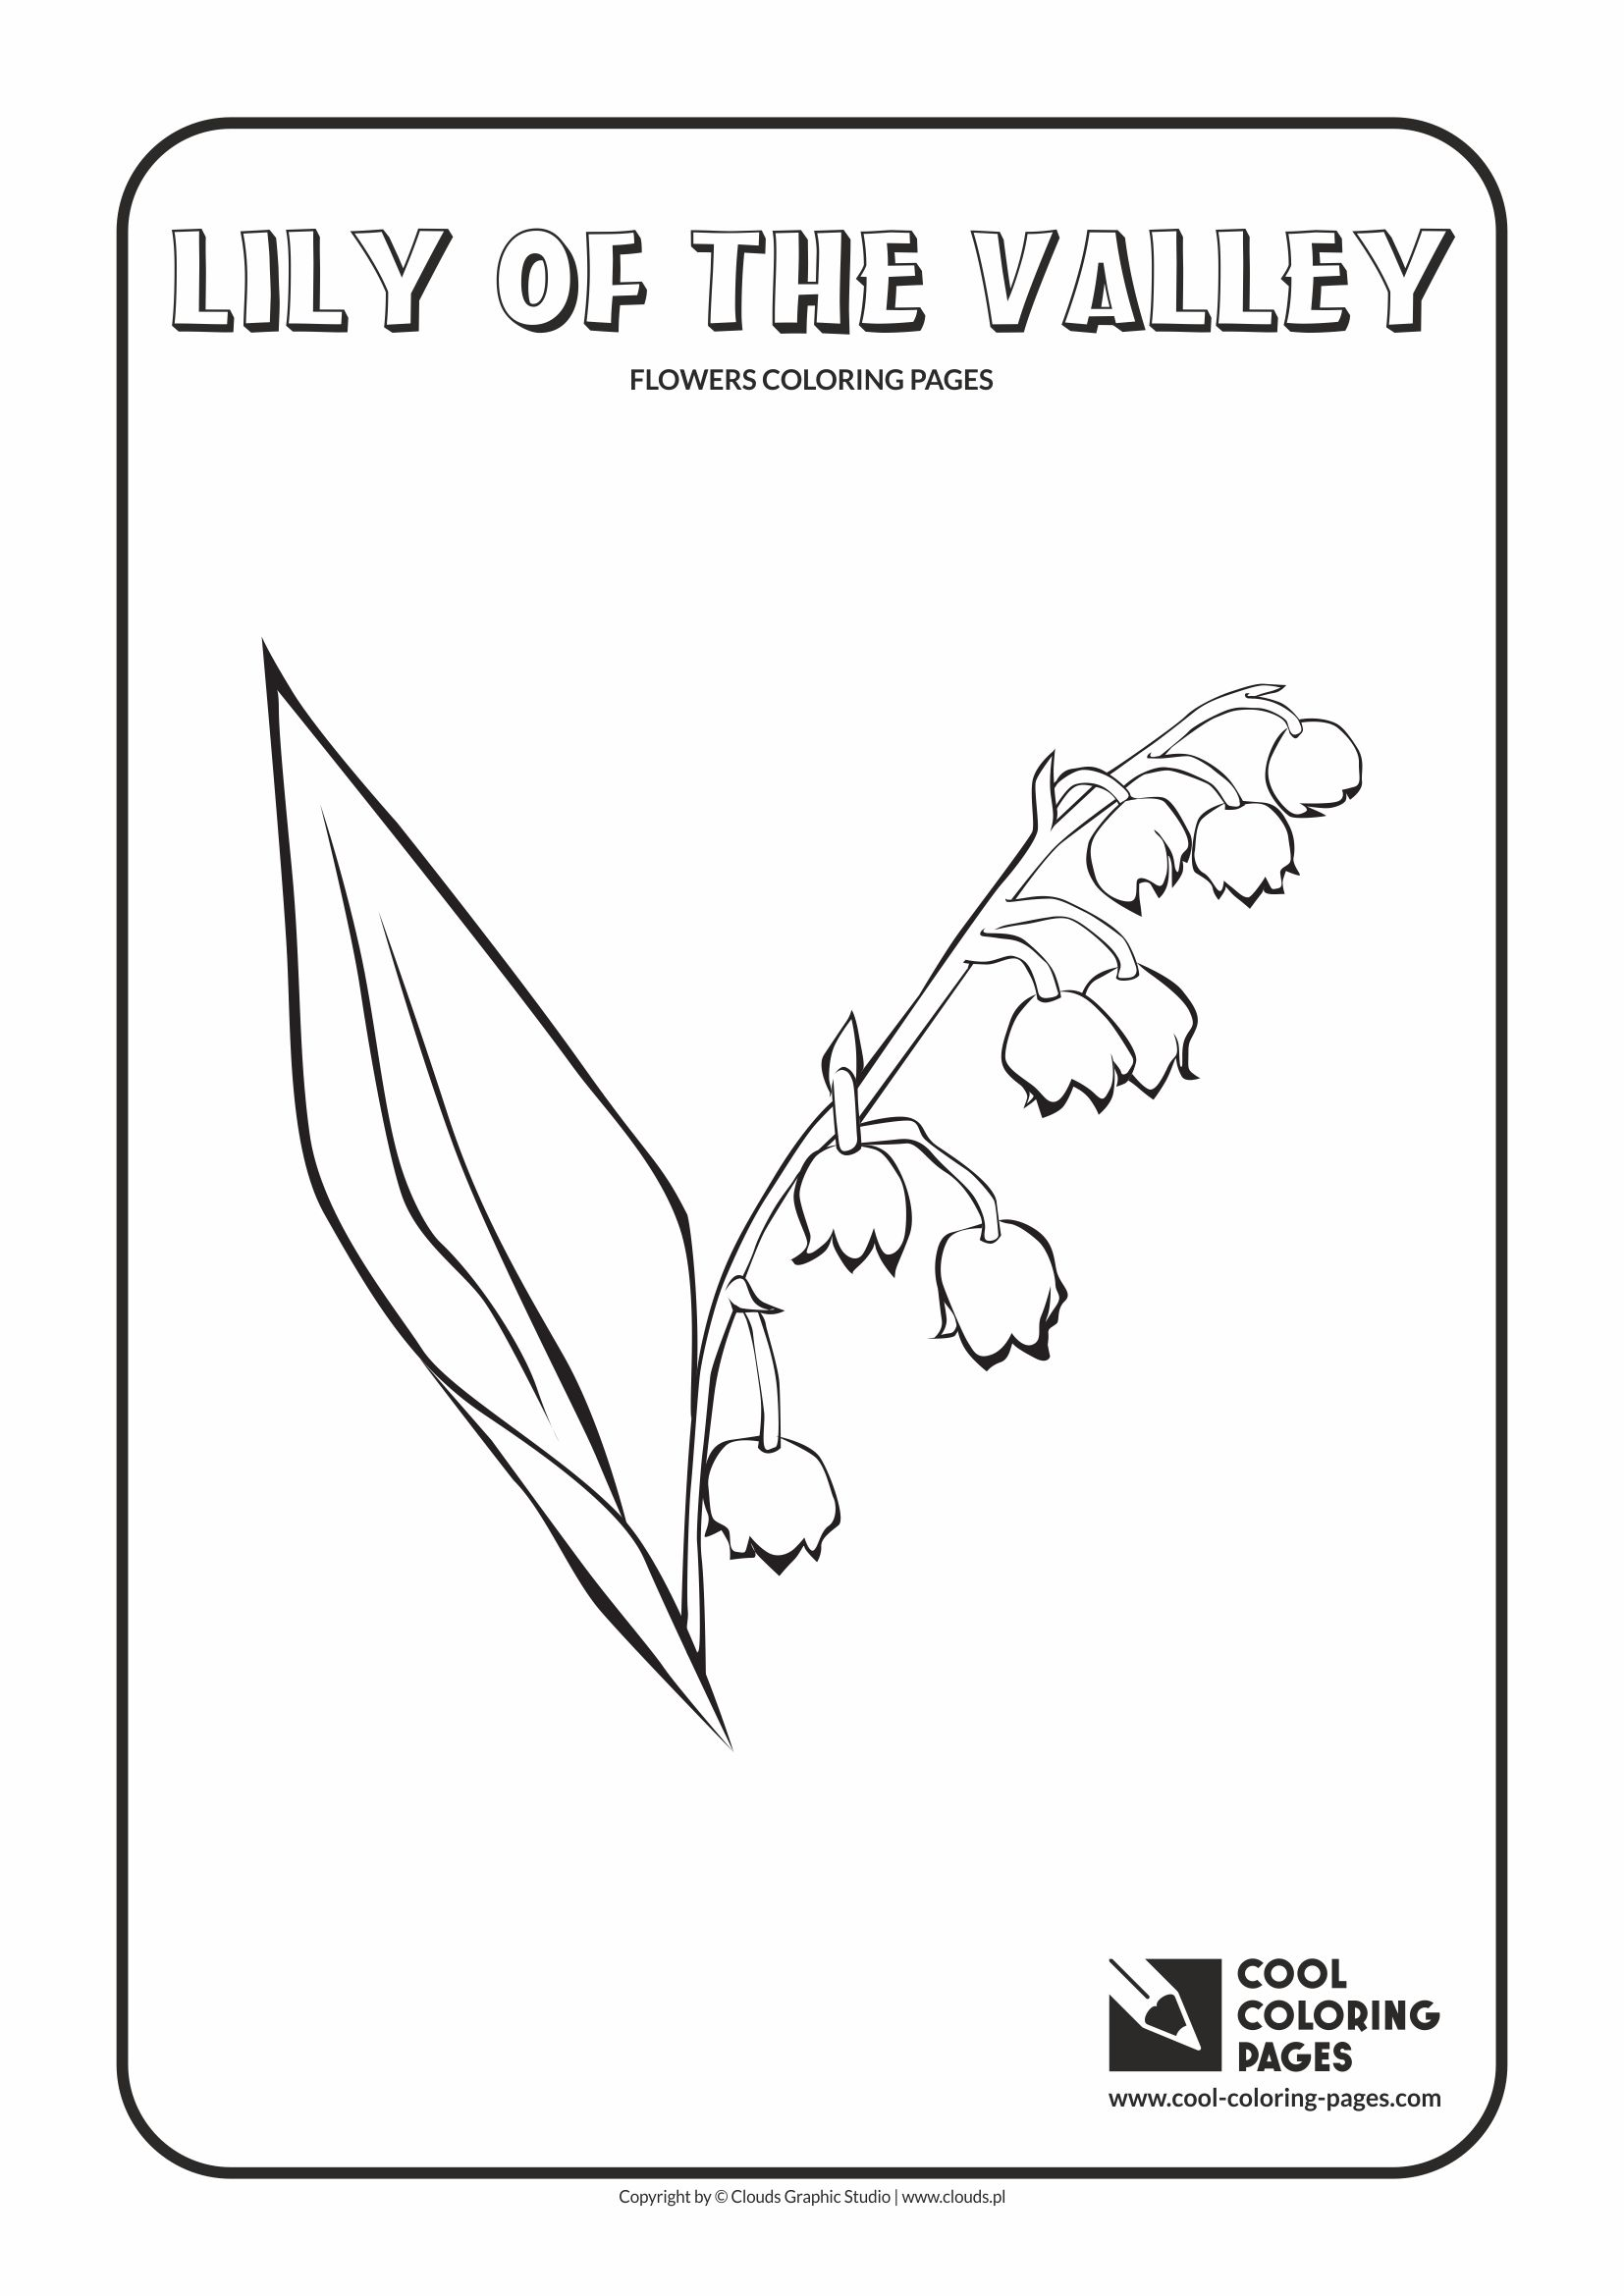 Cool Coloring Pages - Plants / Lily of the valley / Coloring page with lily of the valley